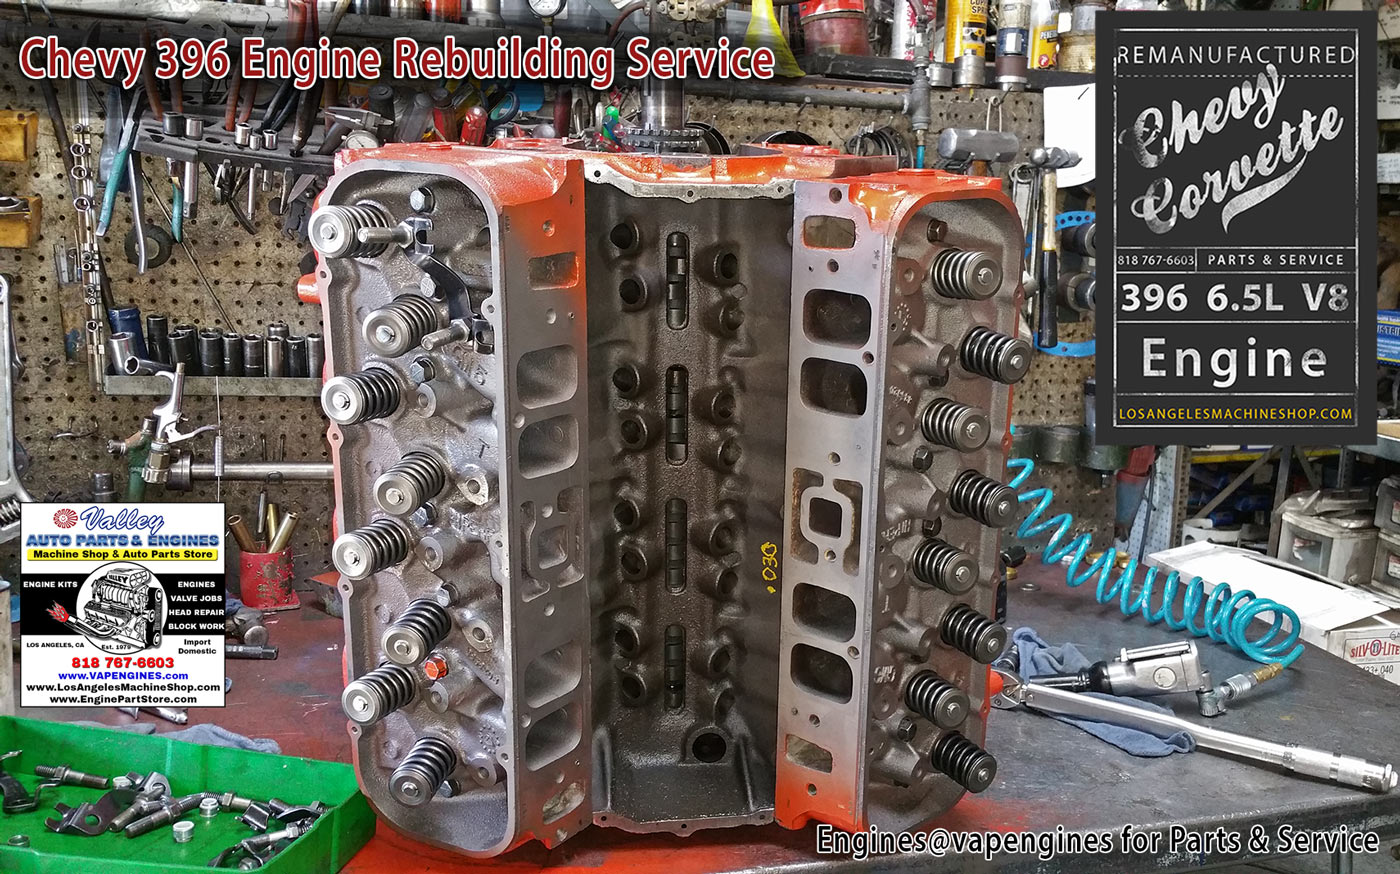 machine shop for engines